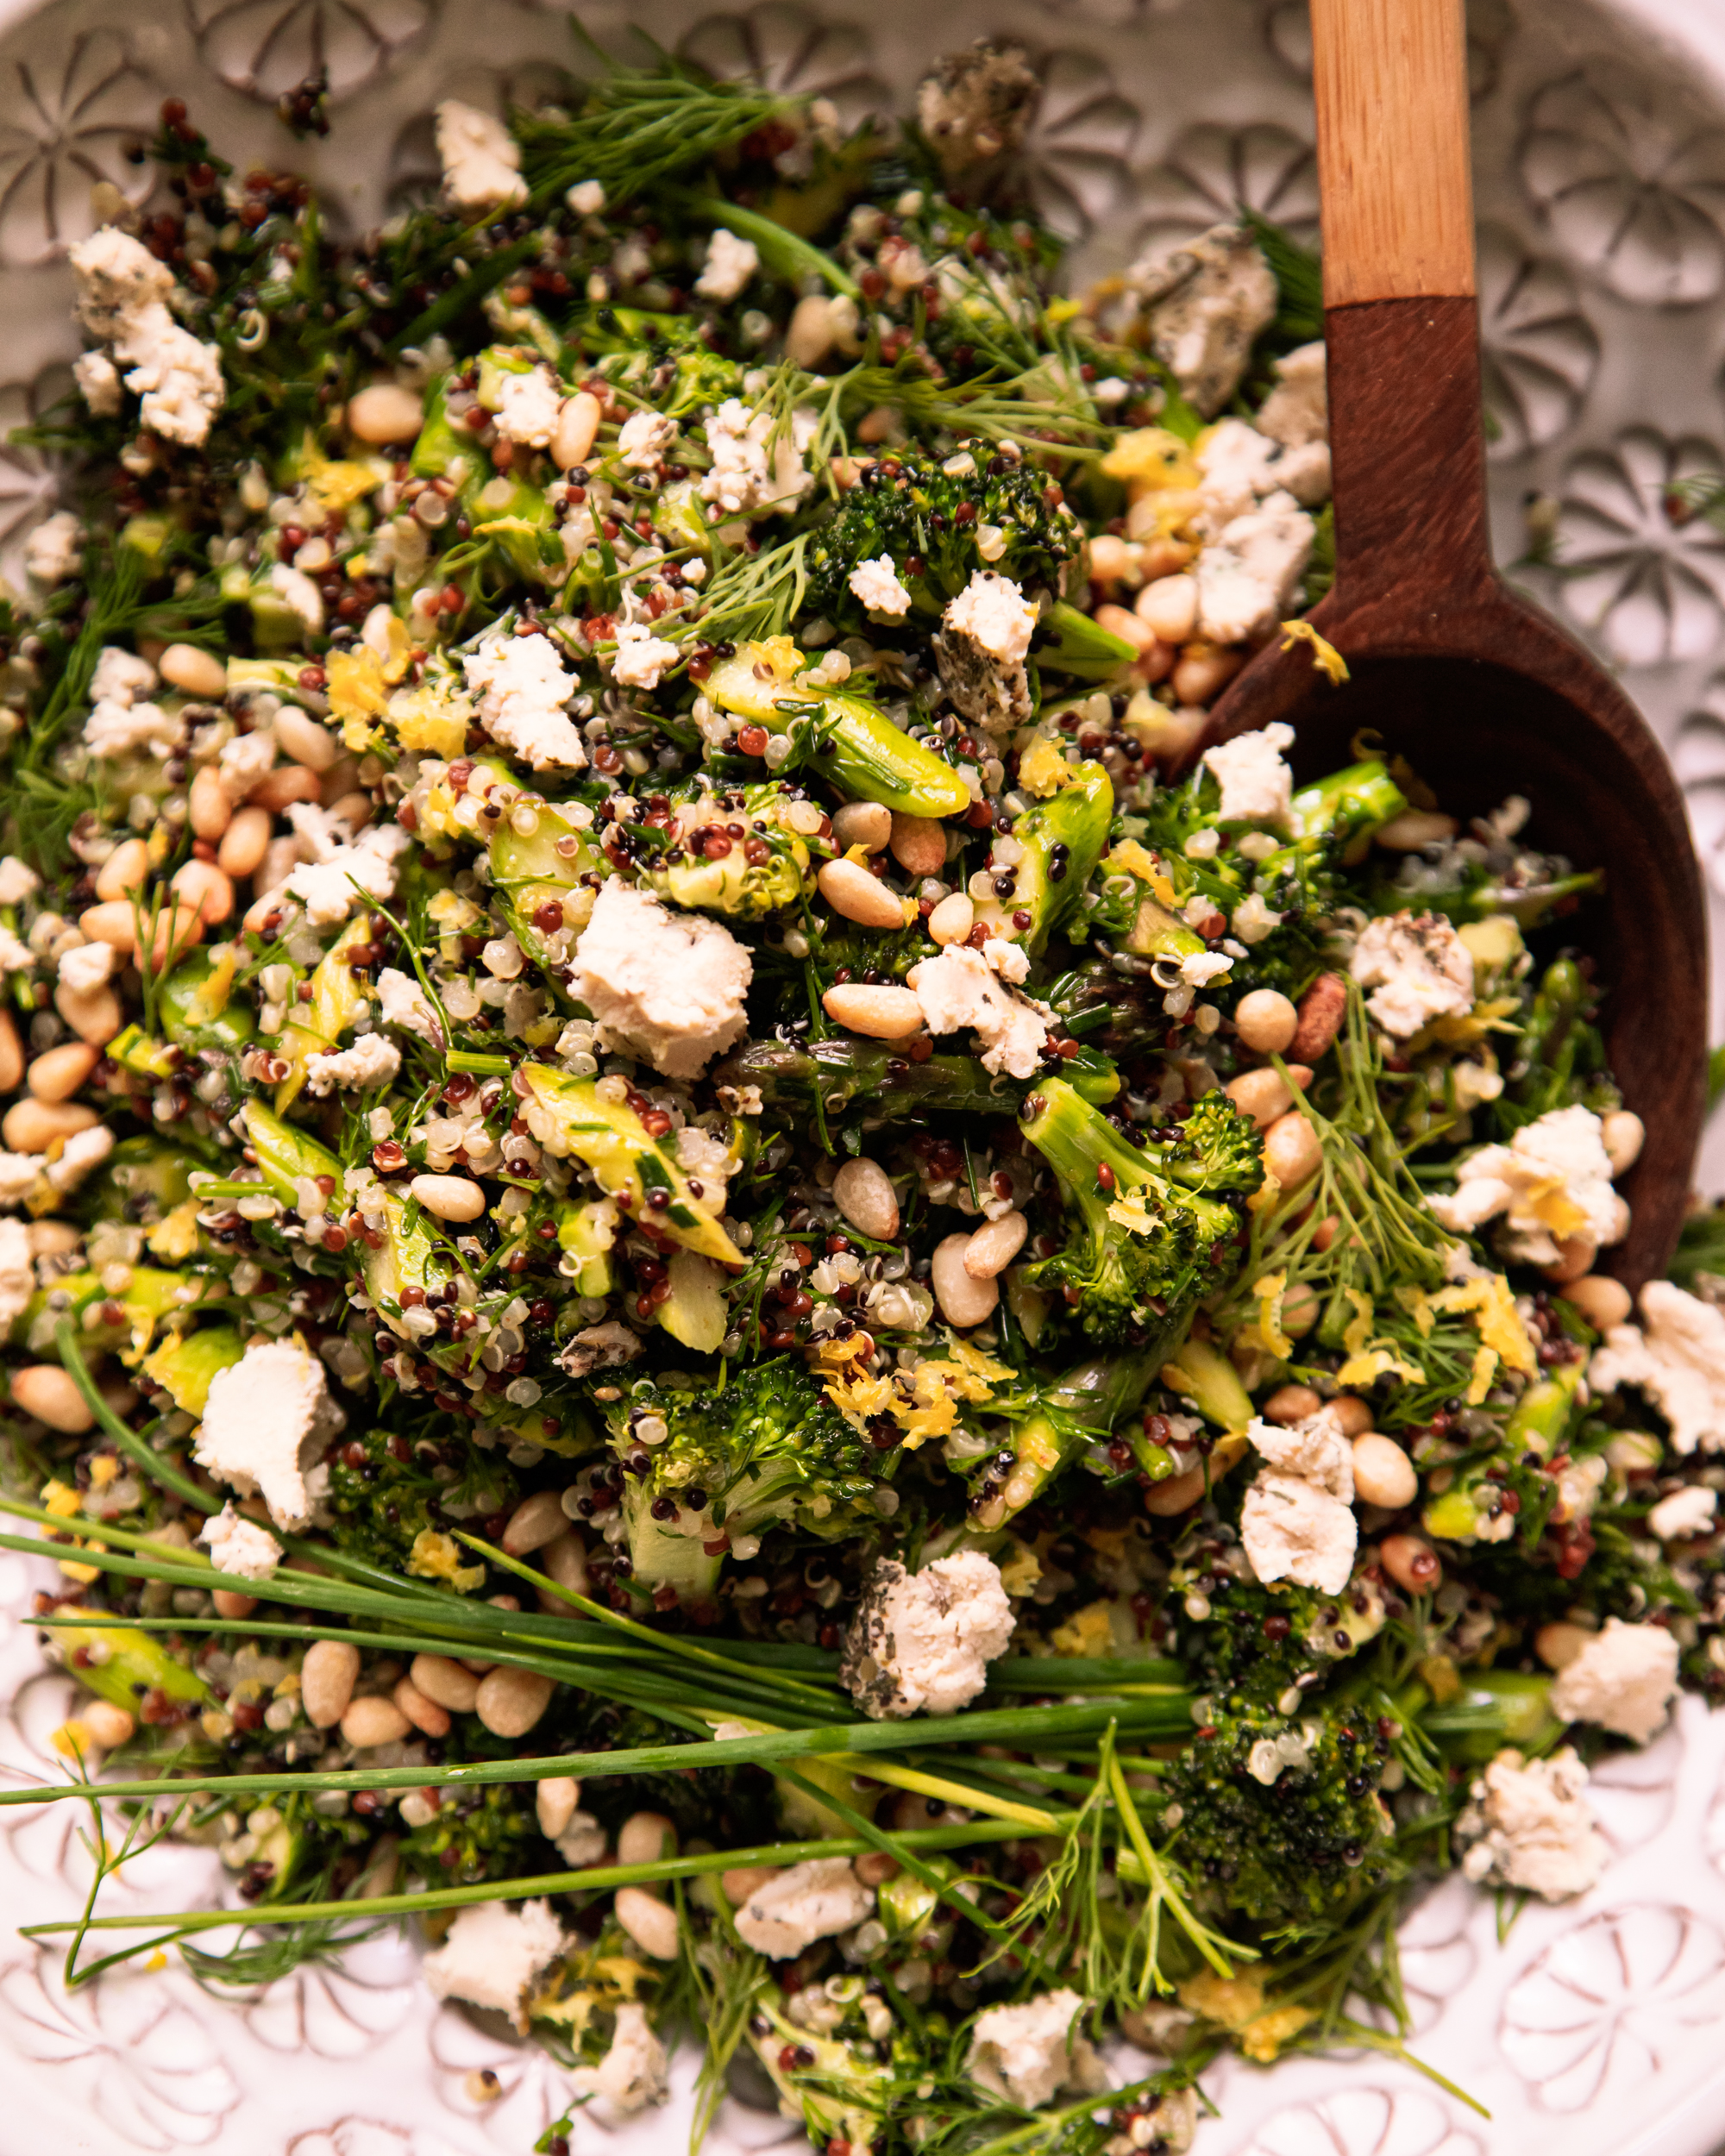 Image shows a green love quinoa salad in a patterned white bowl. The salad is garnished with whole blades of chives and bits of soft vegan cheese.